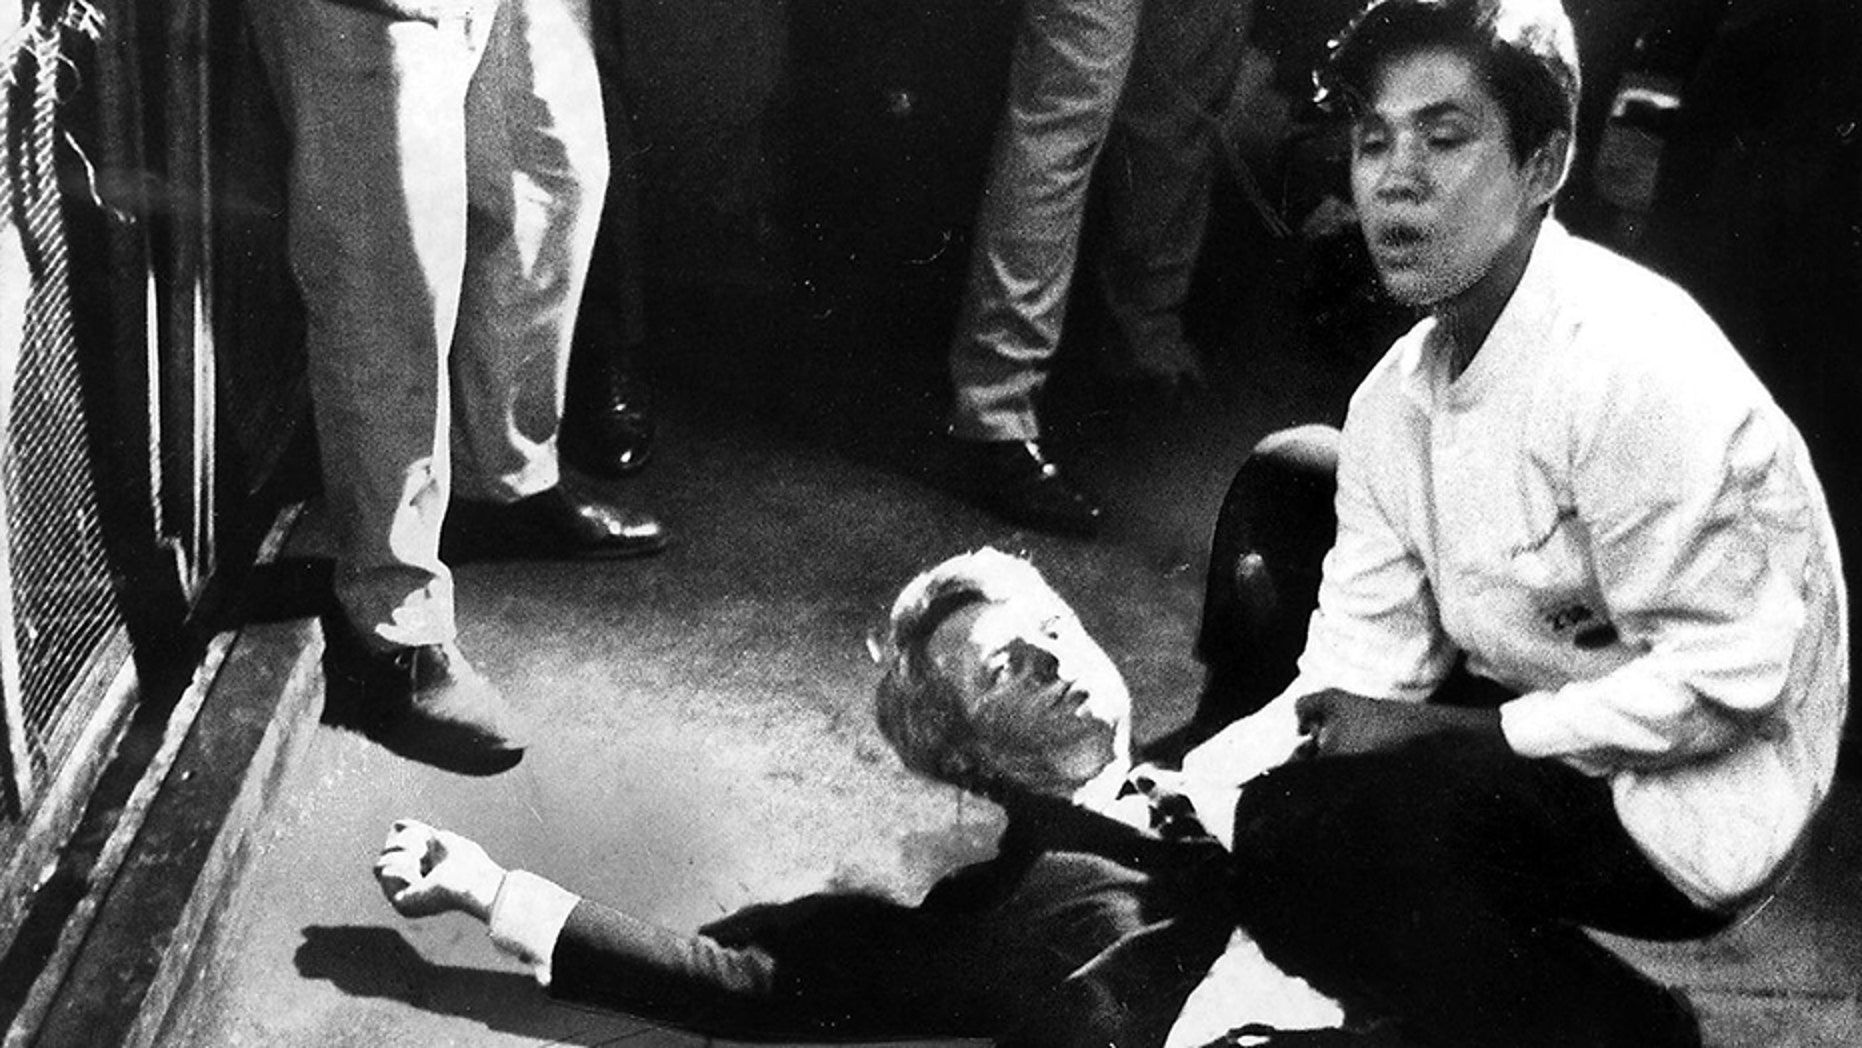 The busboy who held Robert F. Kennedy after he was shot in 1968 revealed in an interview the senator's last words.